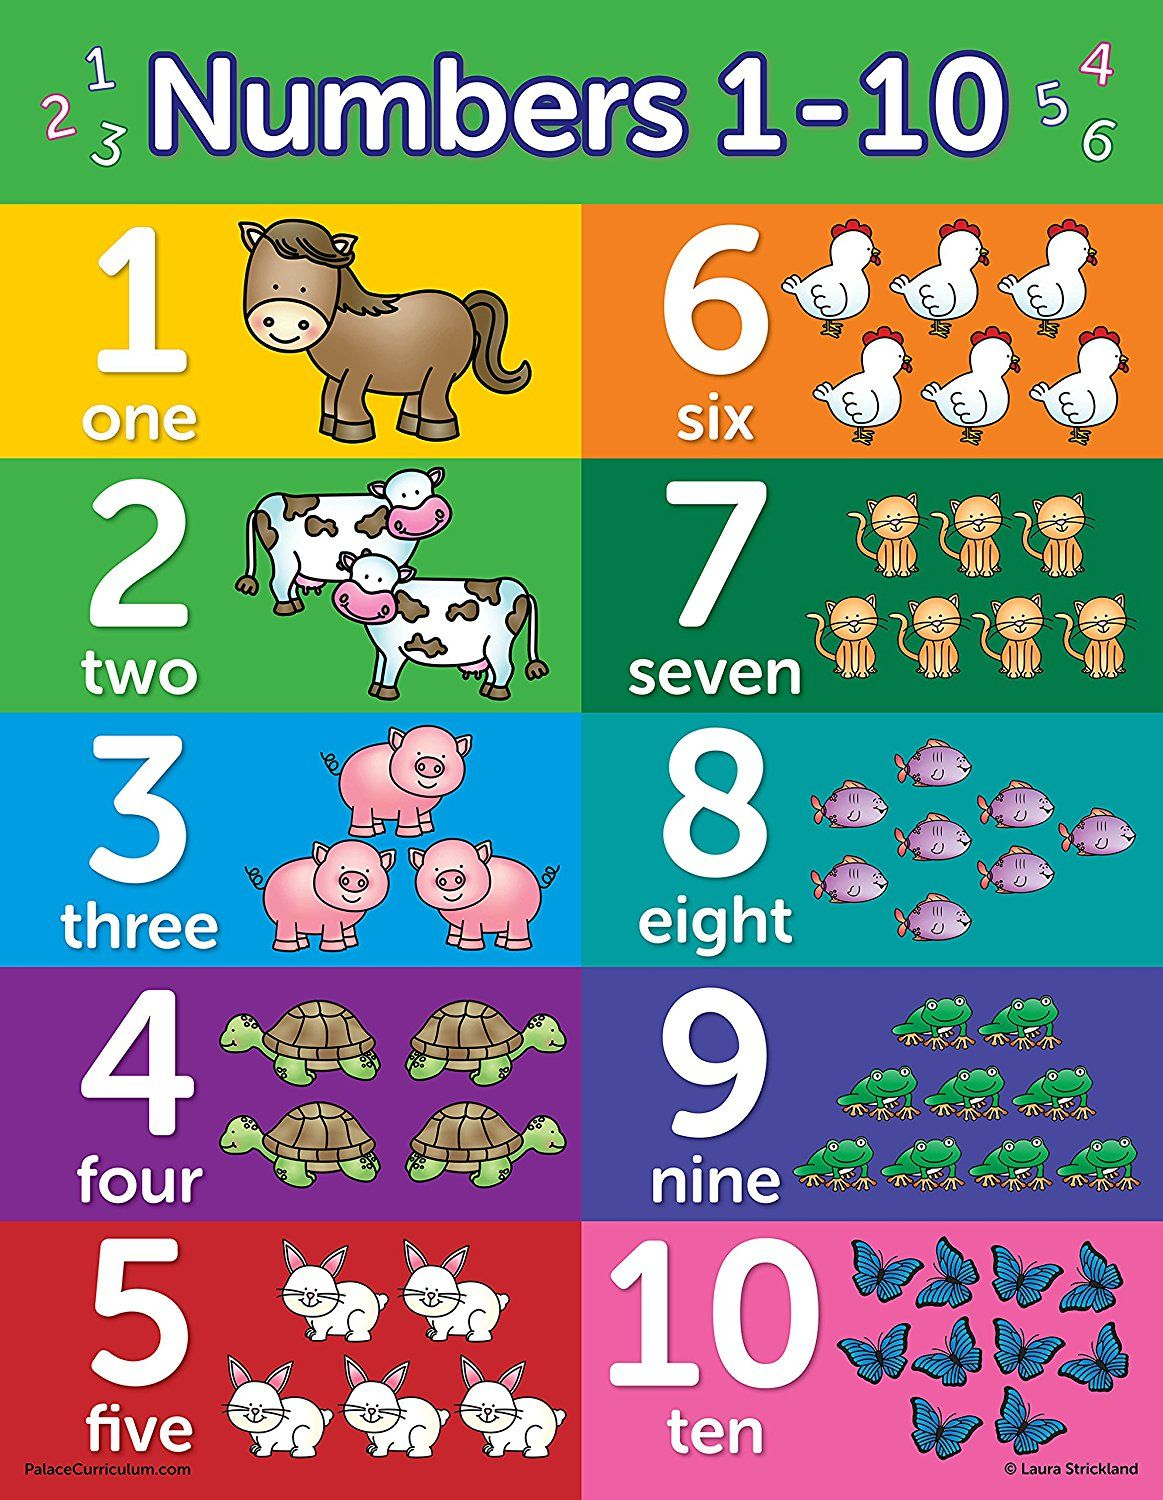 Amazon educational wall posters for toddlers abc alphabet numbers shapes colors days of the week months year also rh pinterest